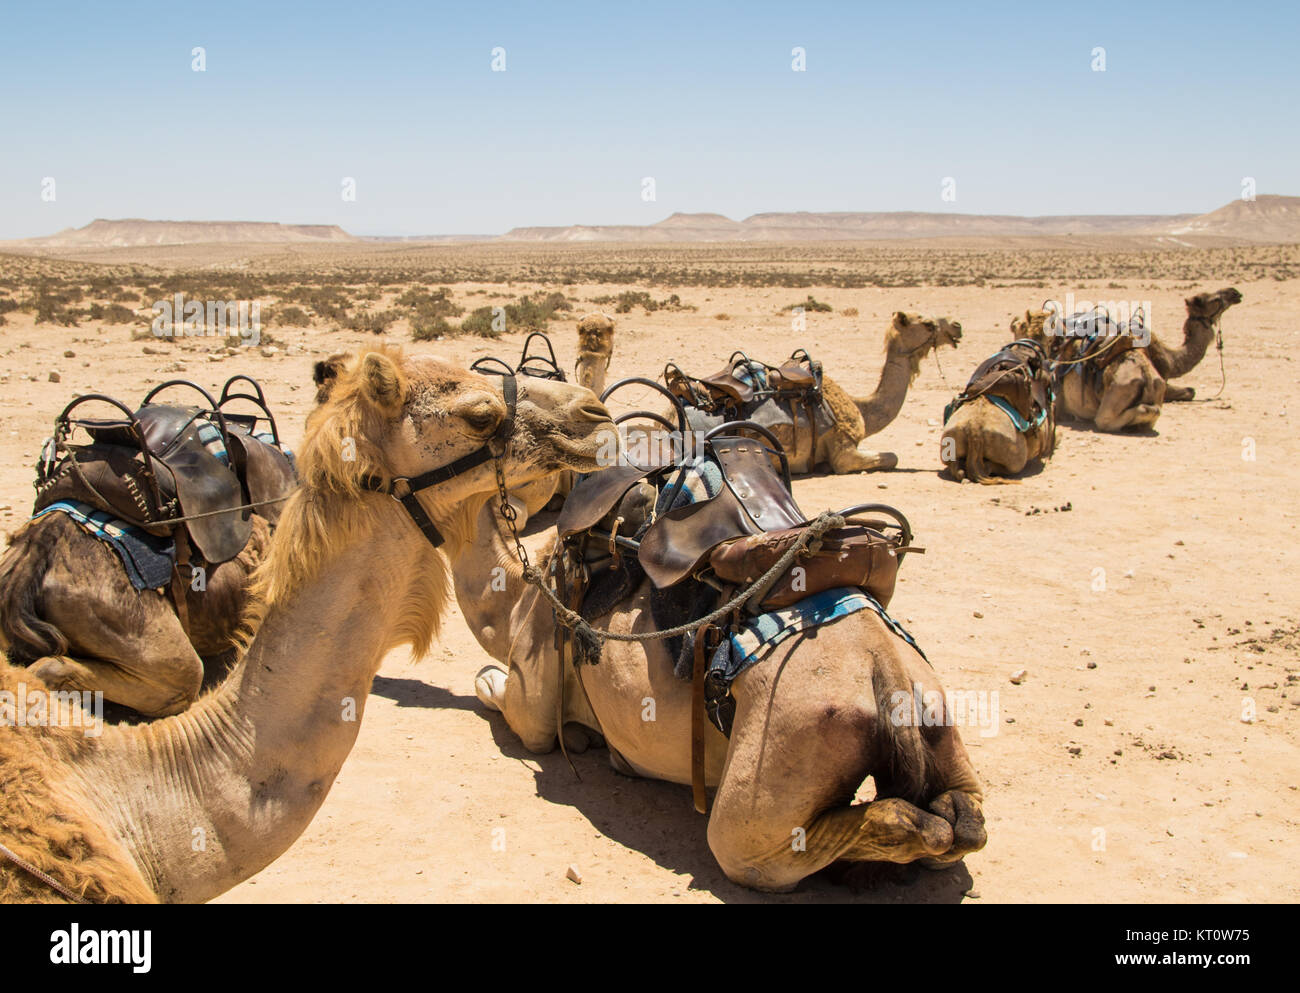 Camels resting in the Desert in the Negev, Israel - Stock Image